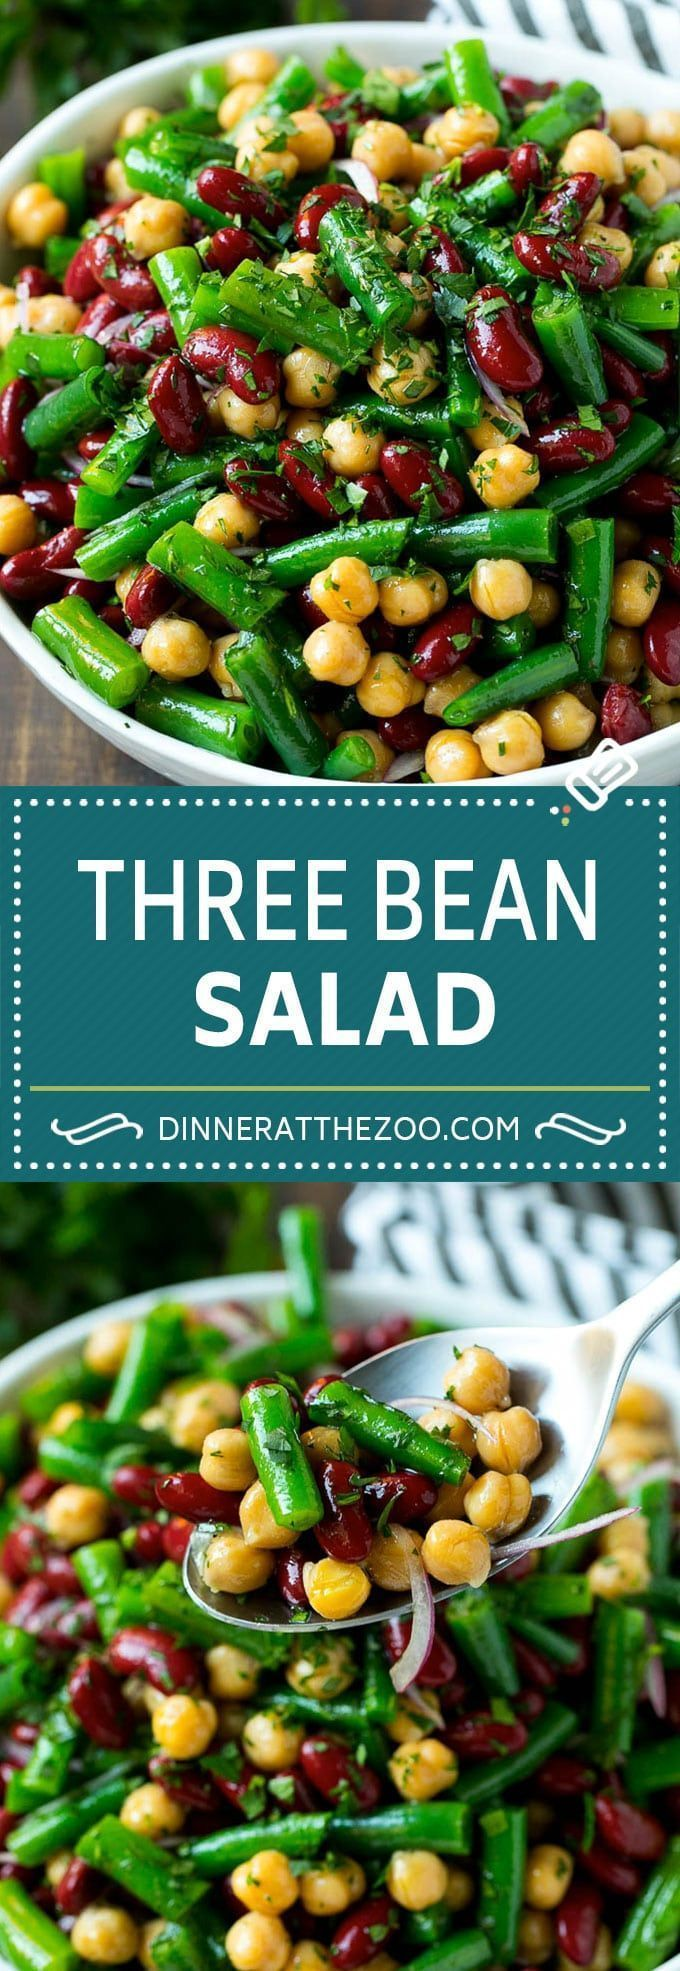 Three Bean Salad Recipe Bean Salad Green Bean Salad Chickpea Salad Salad Beans Vegetables Vegetarian Bean Salad Recipes Three Bean Salad Bean Recipes